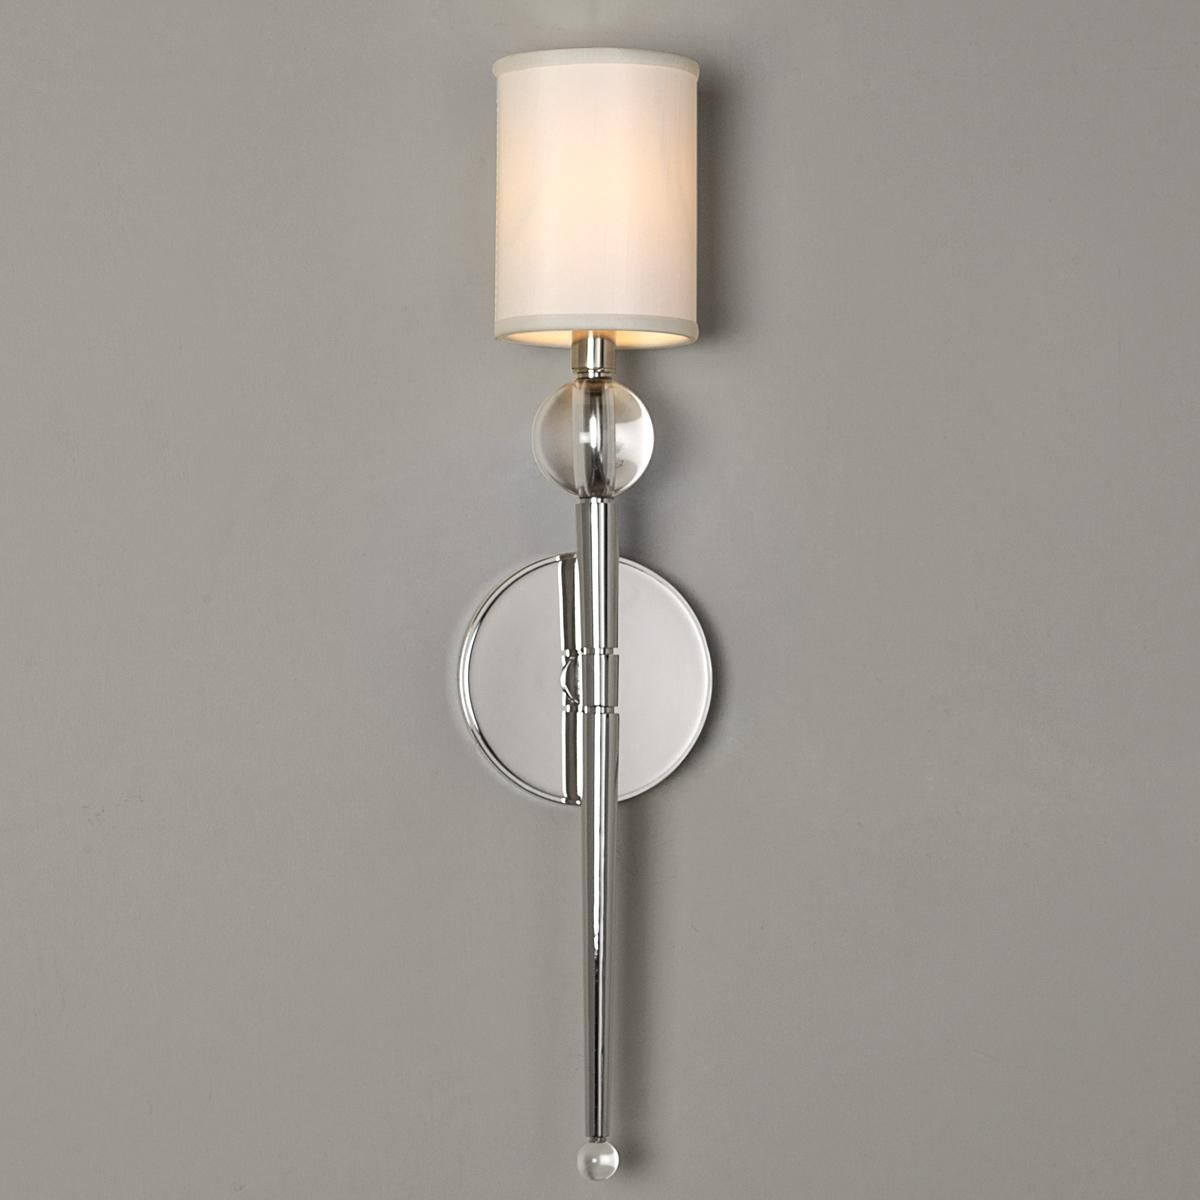 Crystal Ball Elongated Torch Wall Sconce Shades Of Light Wall Sconce Shade Wall Sconces Sconces